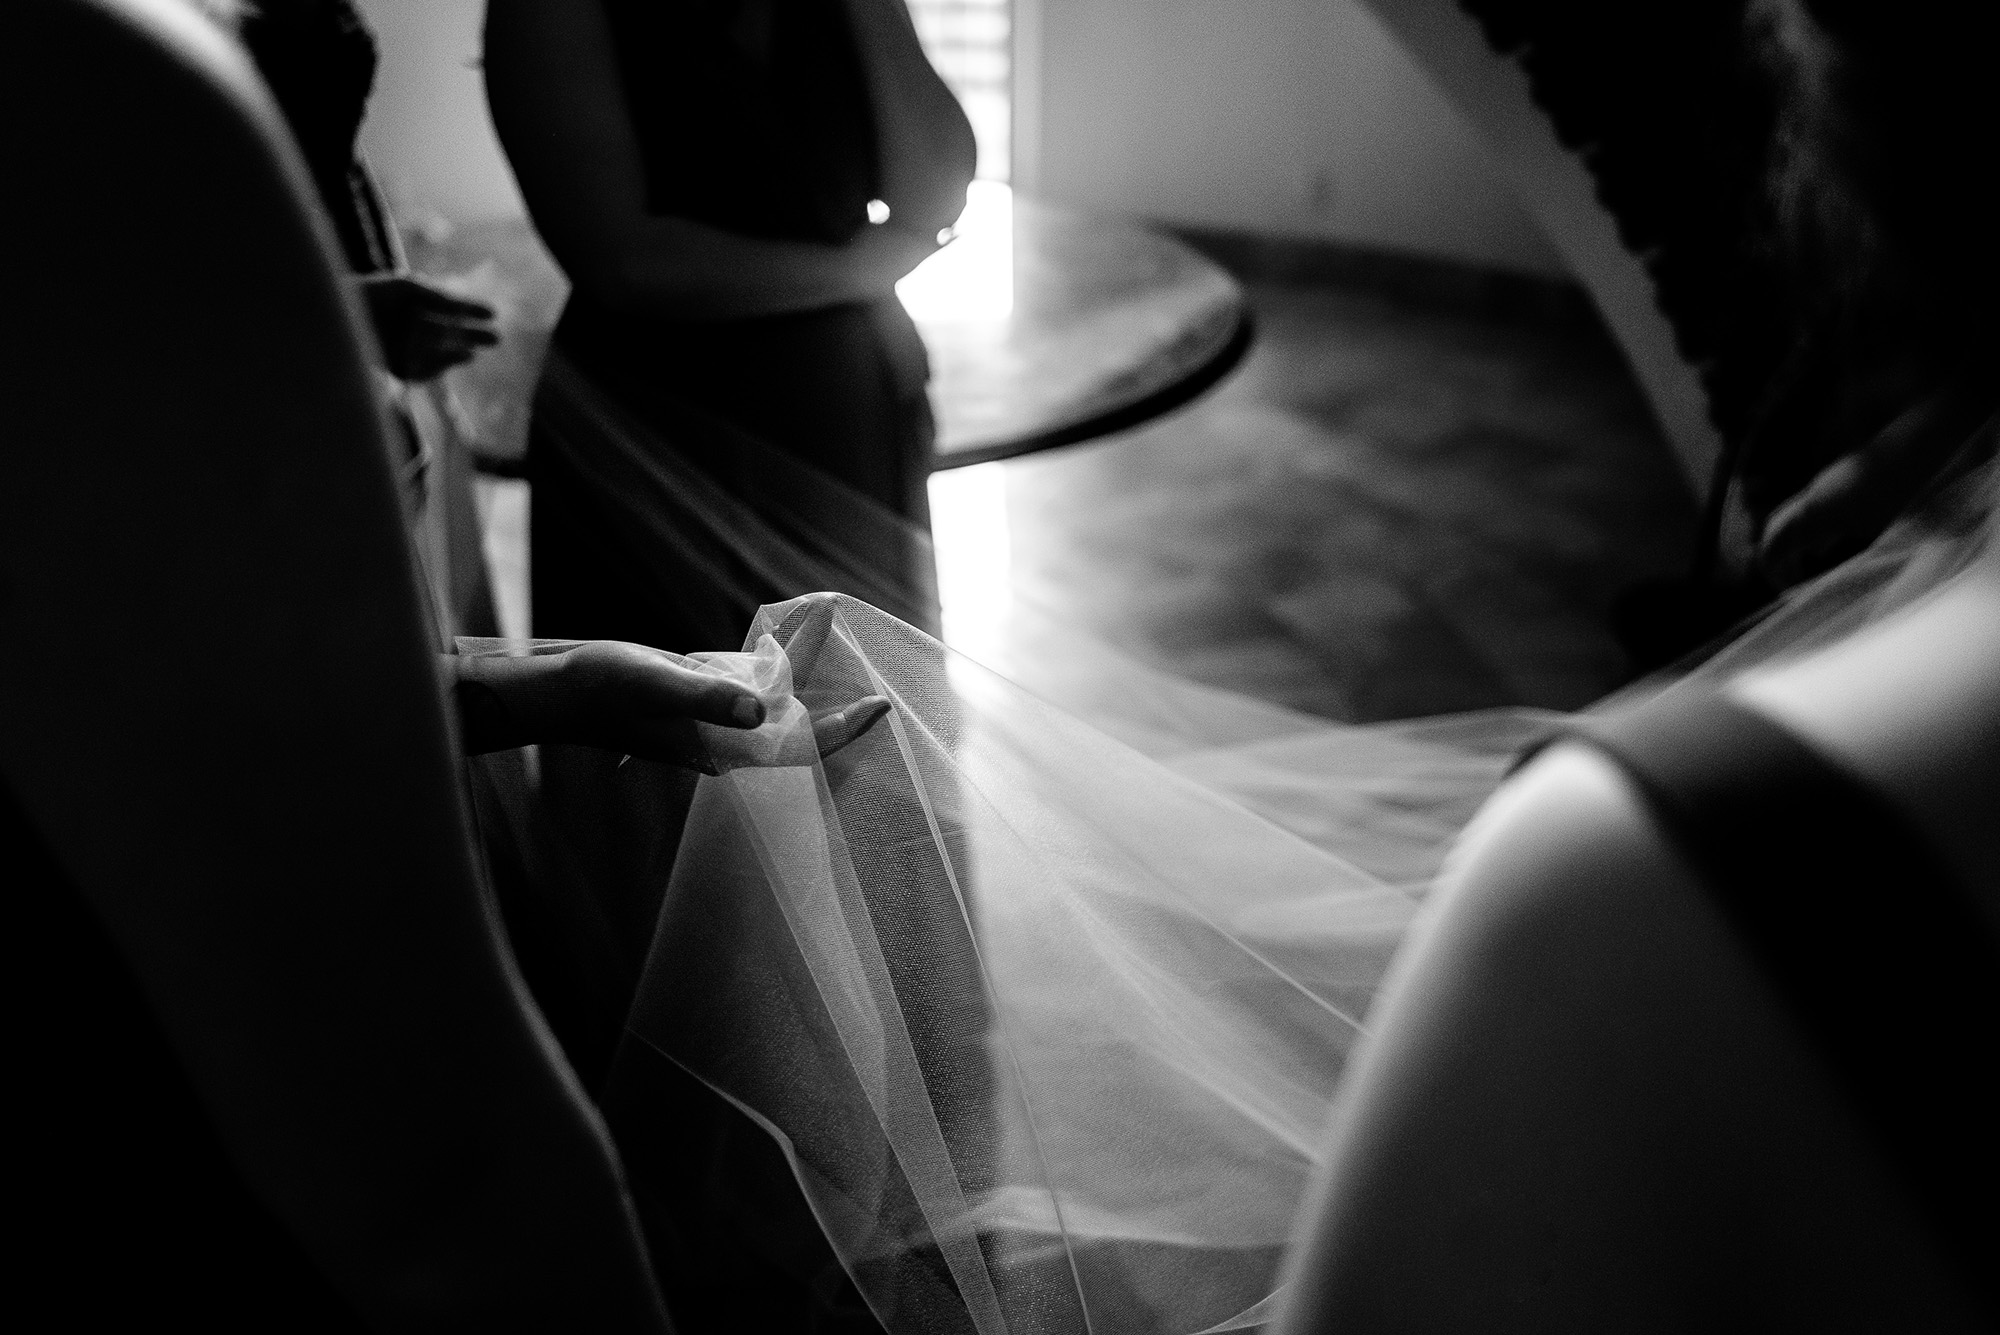 Kansas_City_Wedding_Photographer_zv.jpg